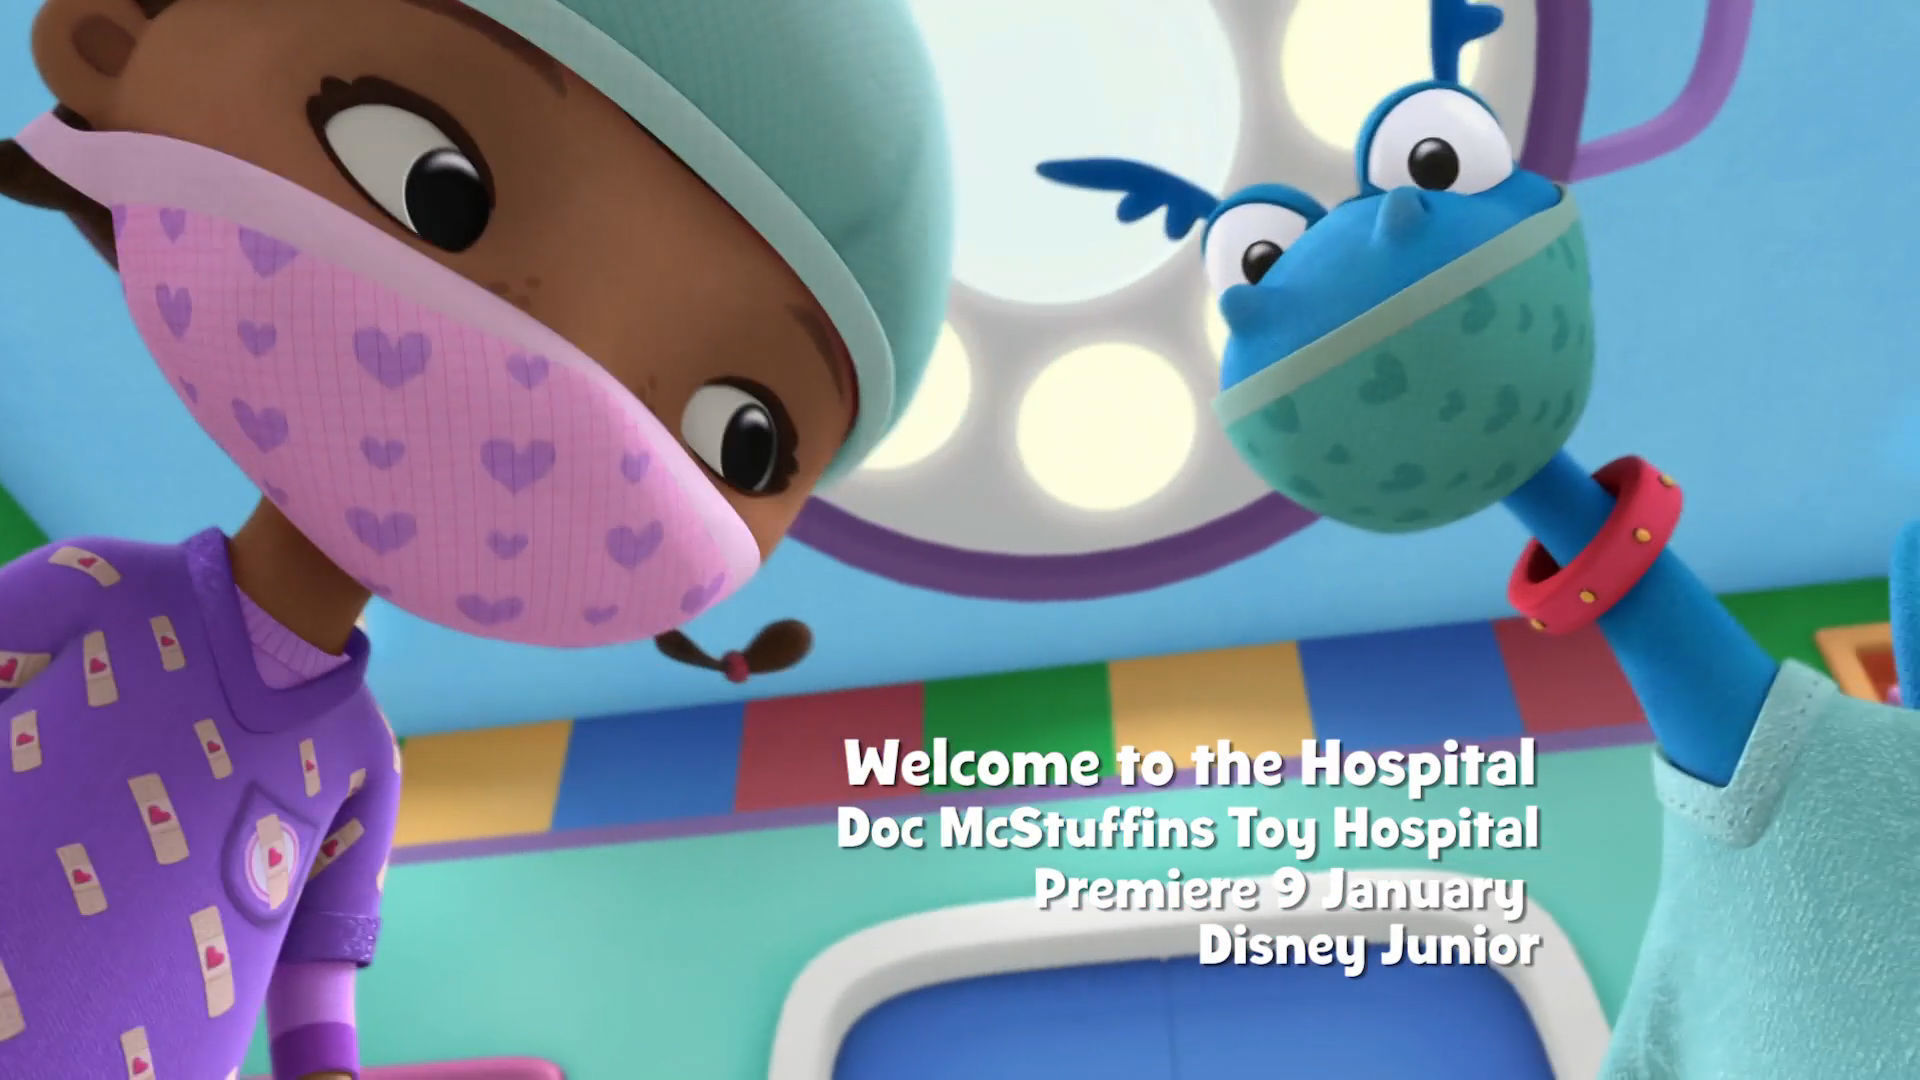 Doc McStuffins Toy Hospital - Welcome to the Hospital